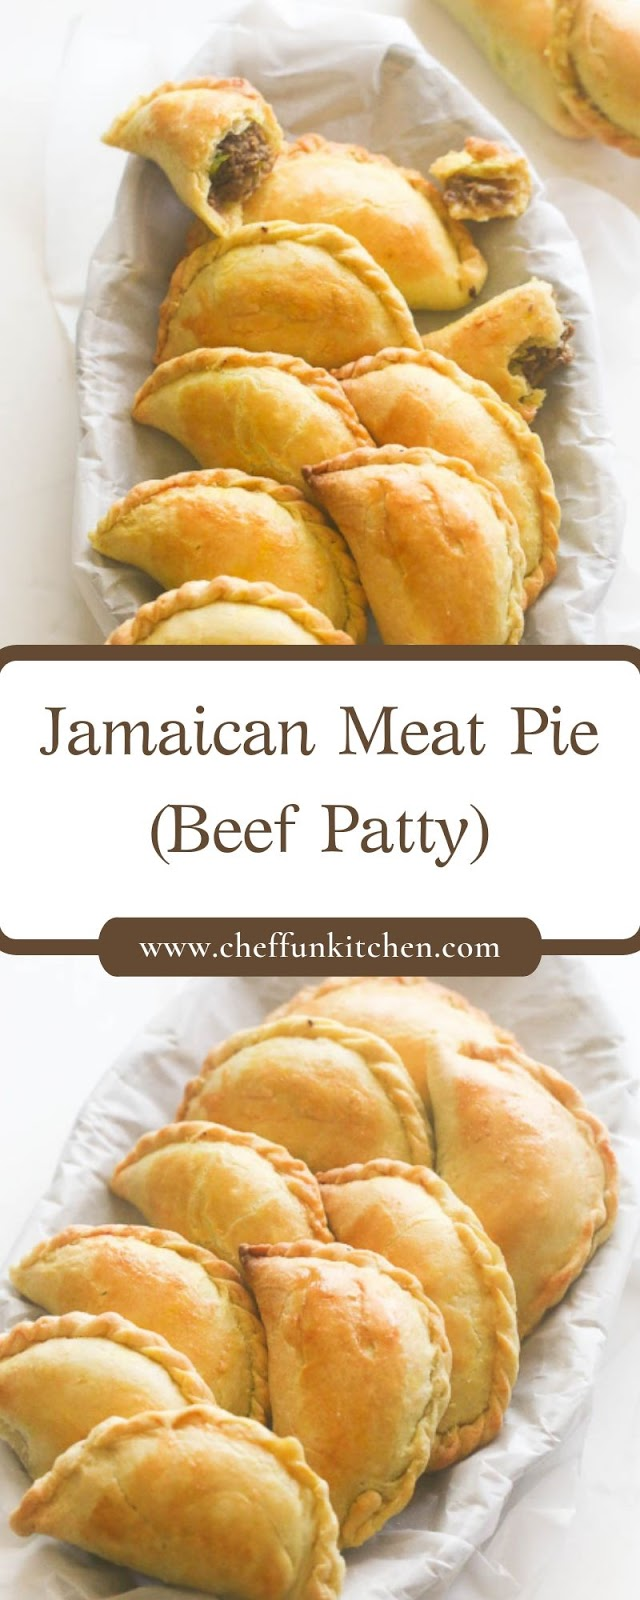 Jamaican Meat Pie (Beef Patty)